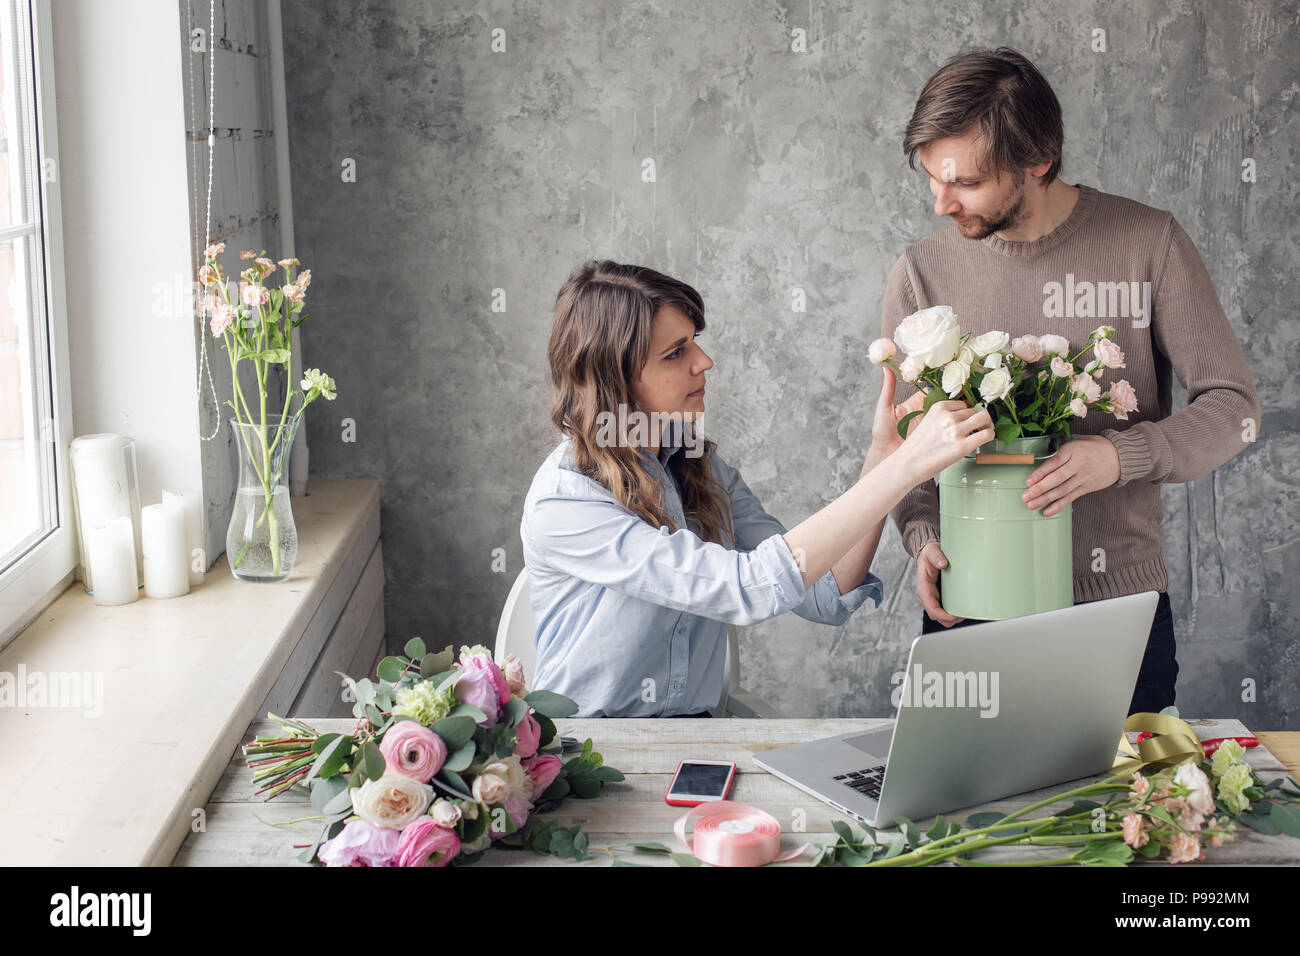 The concept of working in a flower shop. Order-taking and delivery. Woman owner and man assistant in floral design studio, making decorations and arrangements. - Stock Image